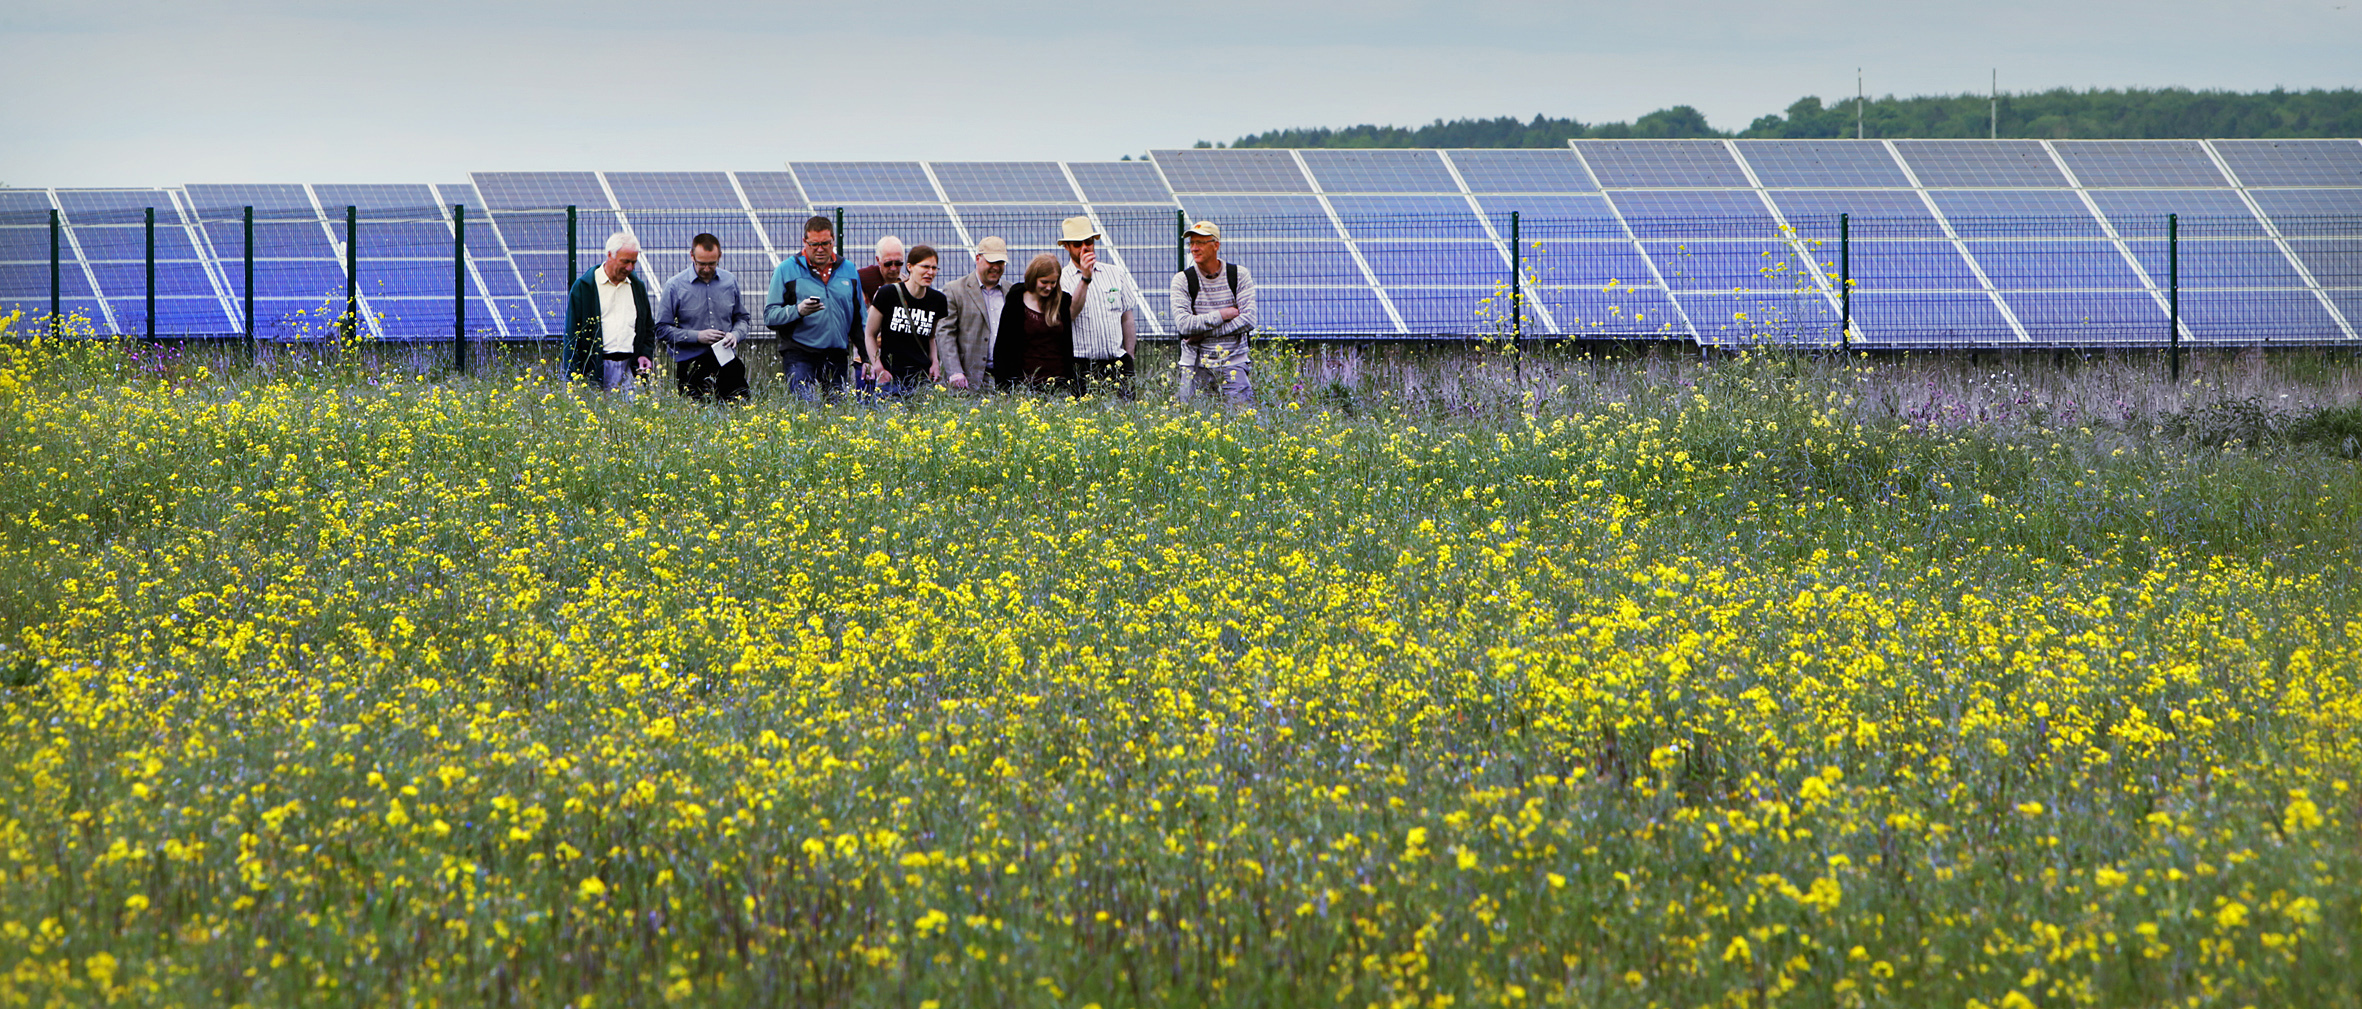 Visitors get a guided tour of Westmill Solar Park in 2014. Picture: Damian Halliwell